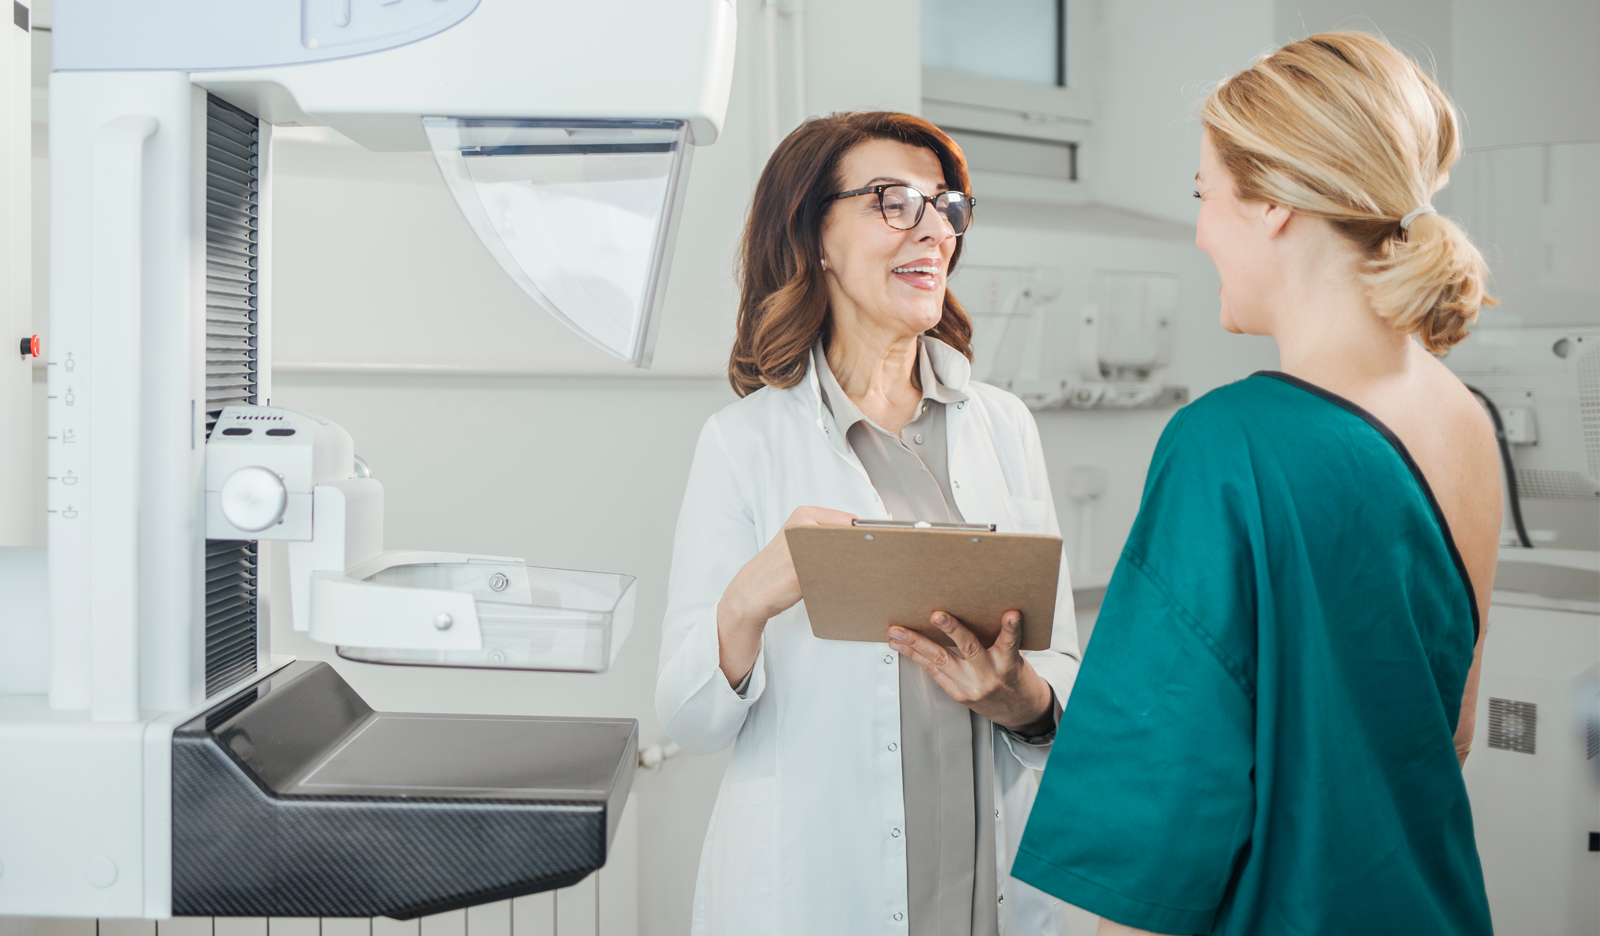 a doctor chats with her breast cancer patient after she had a mammogram